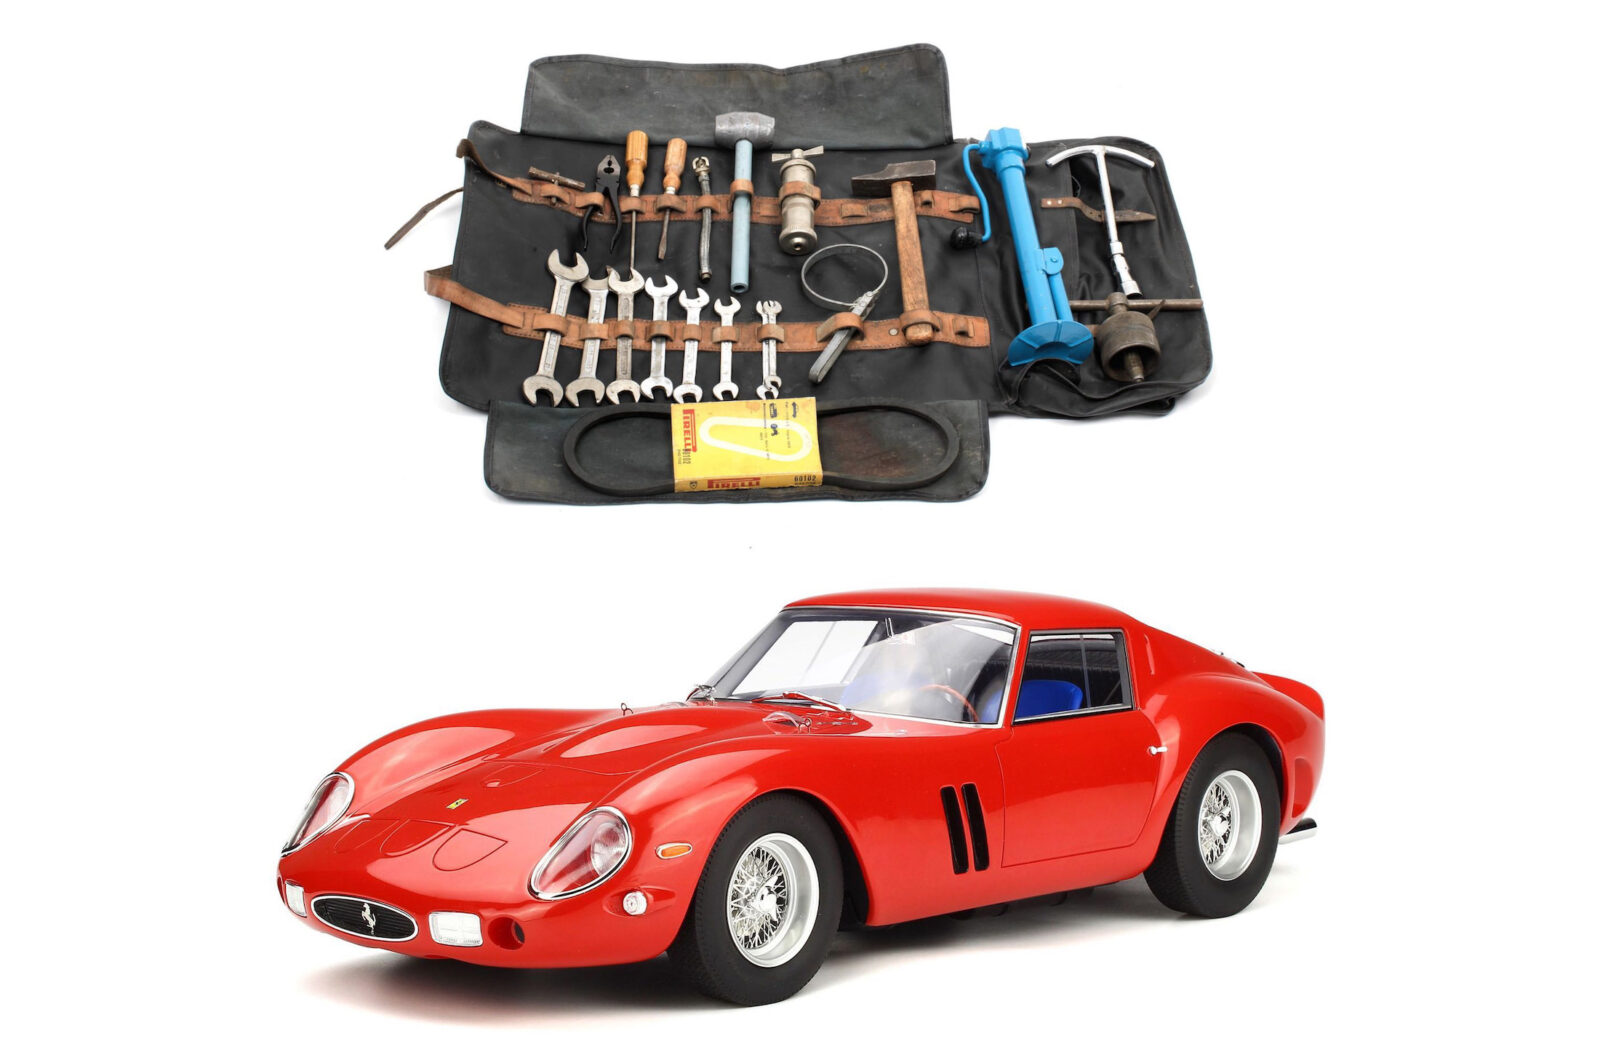 An Original Ferrari 250 Tool Roll - That (Probably) Costs More Than Your Car